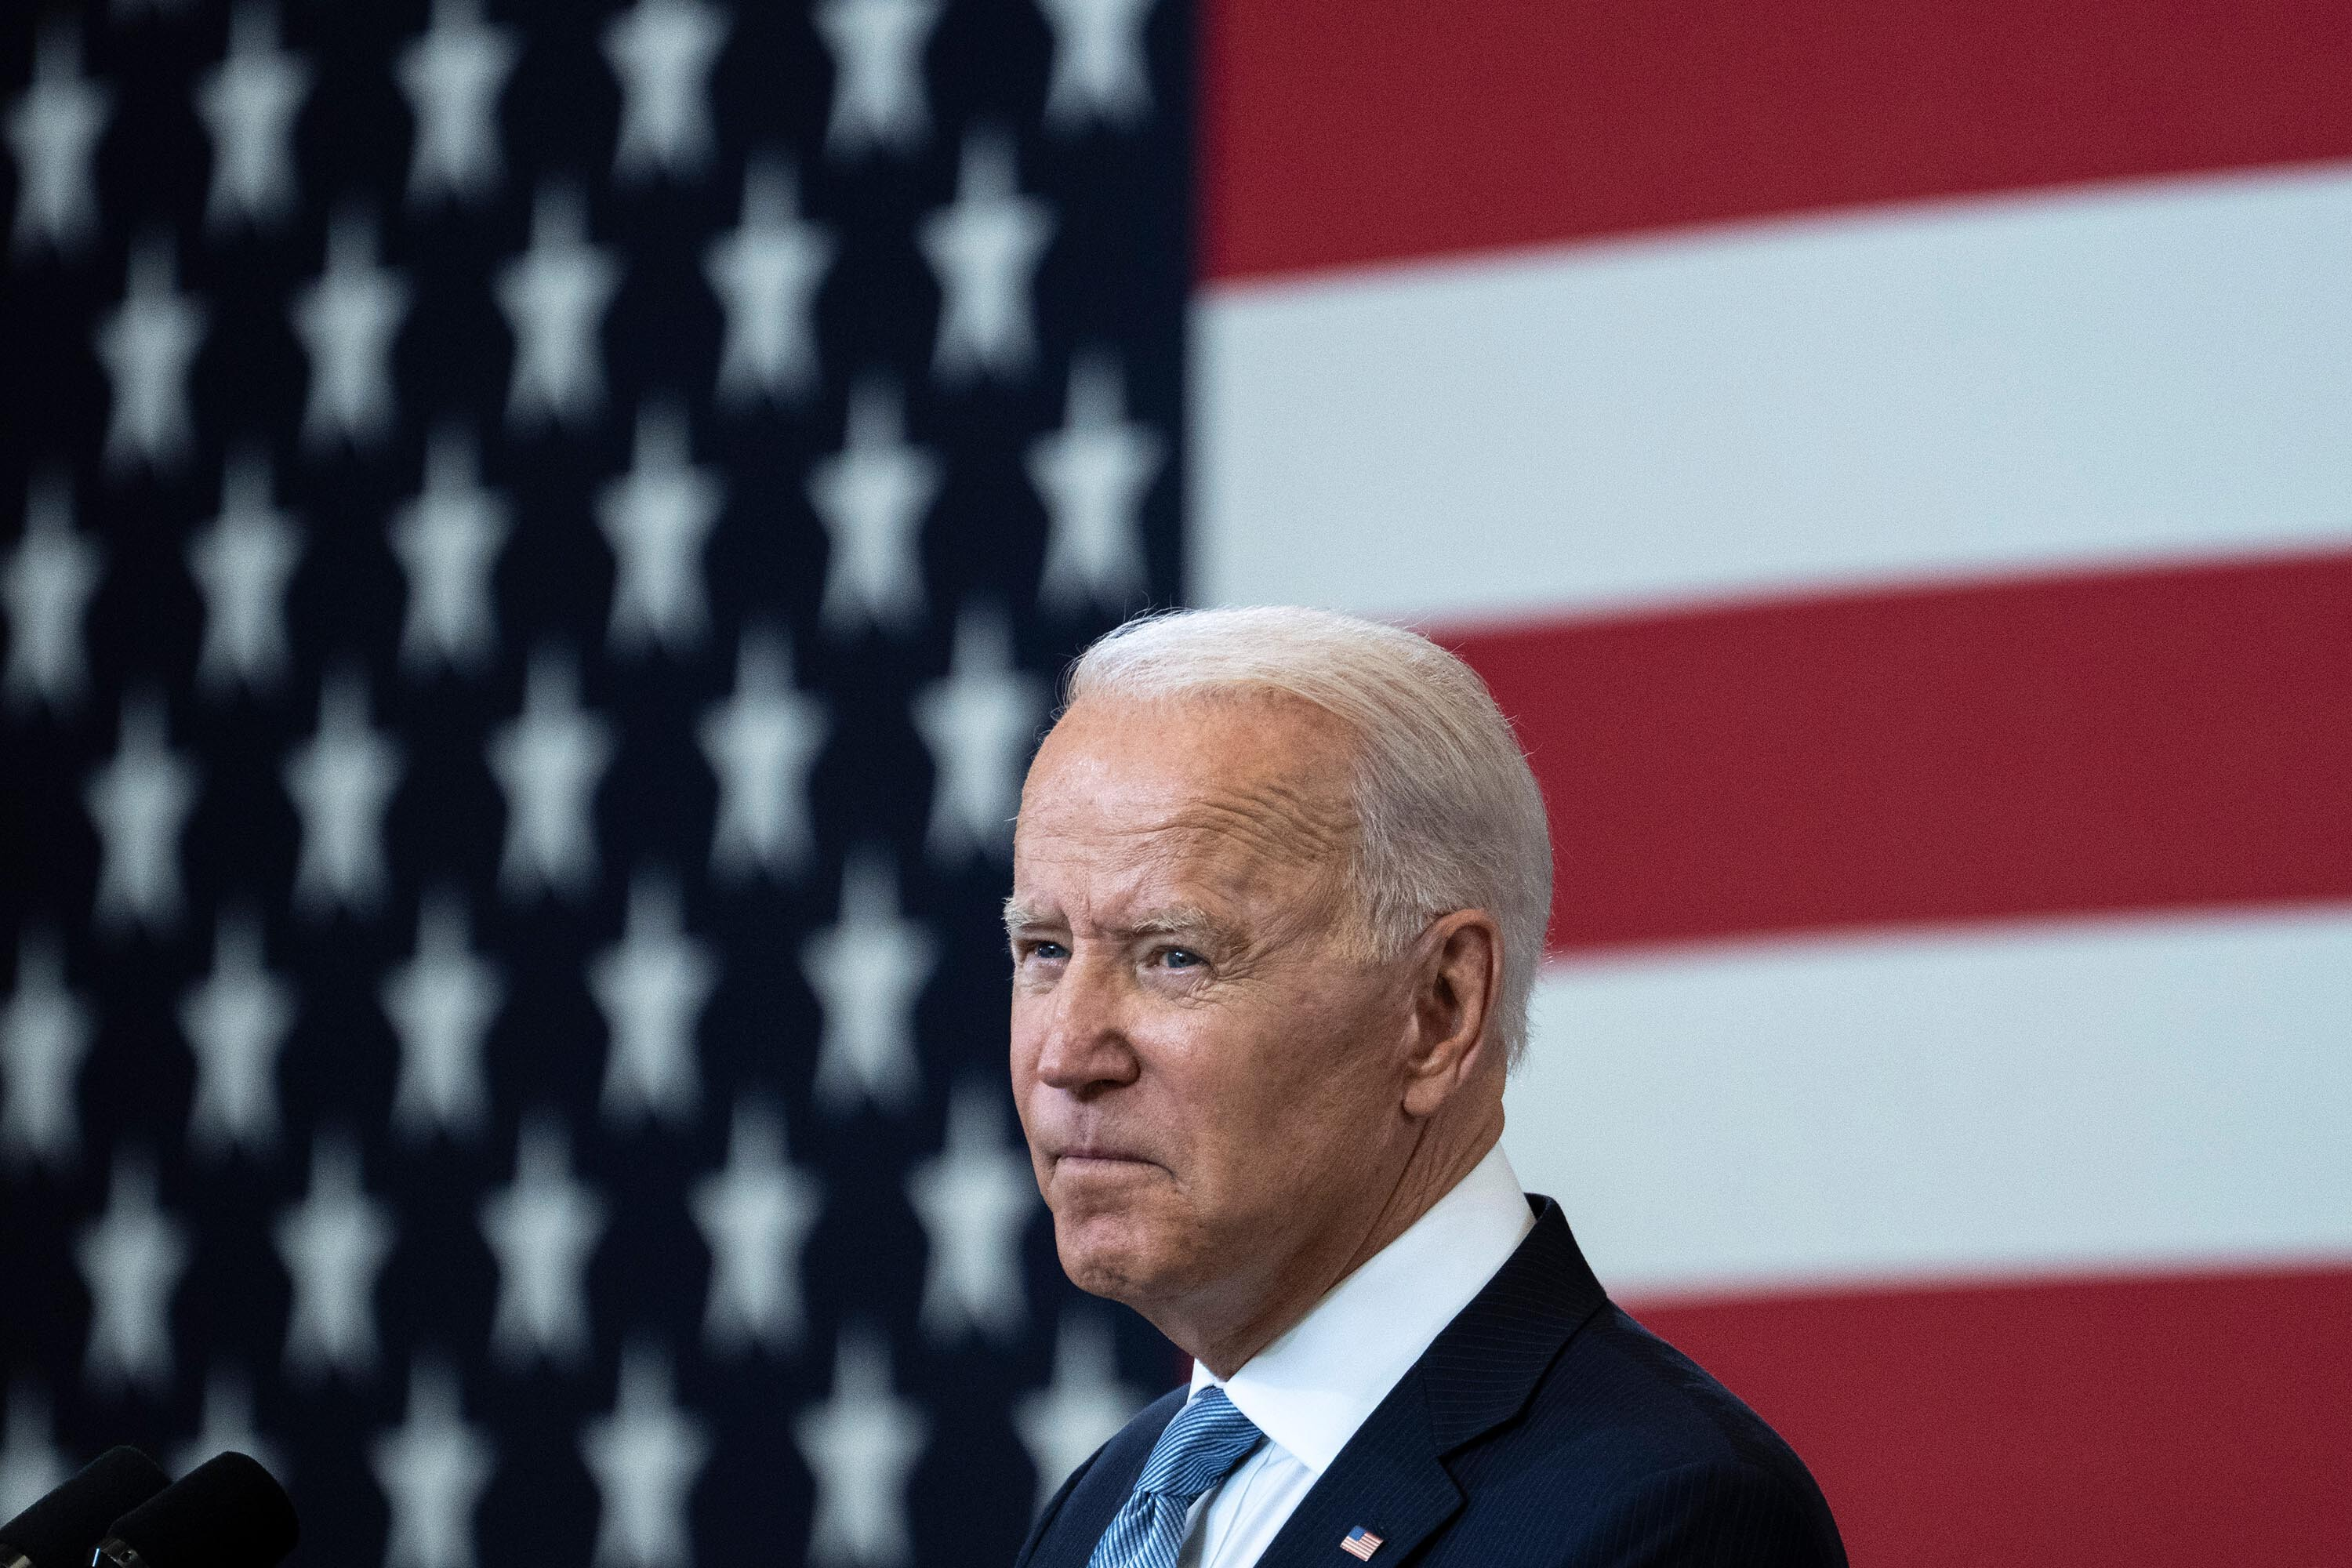 Biden announces measures to incentivize Covid-19 vaccinations, including a requirement for federal employees